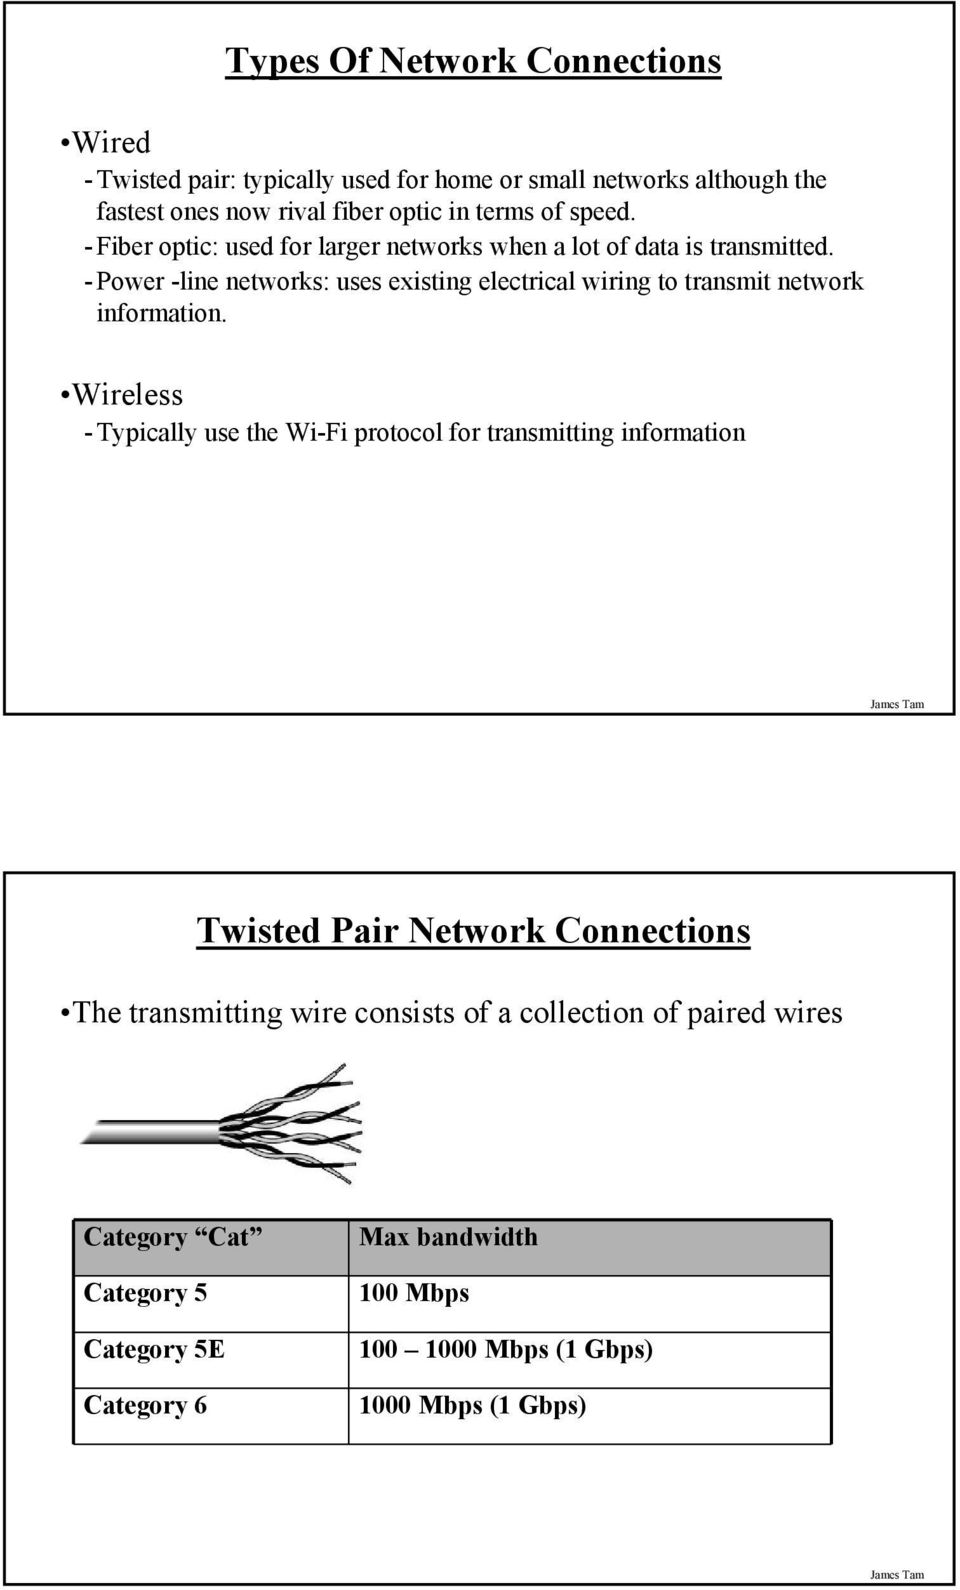 - Power -line networks: uses existing electrical wiring to transmit network information.